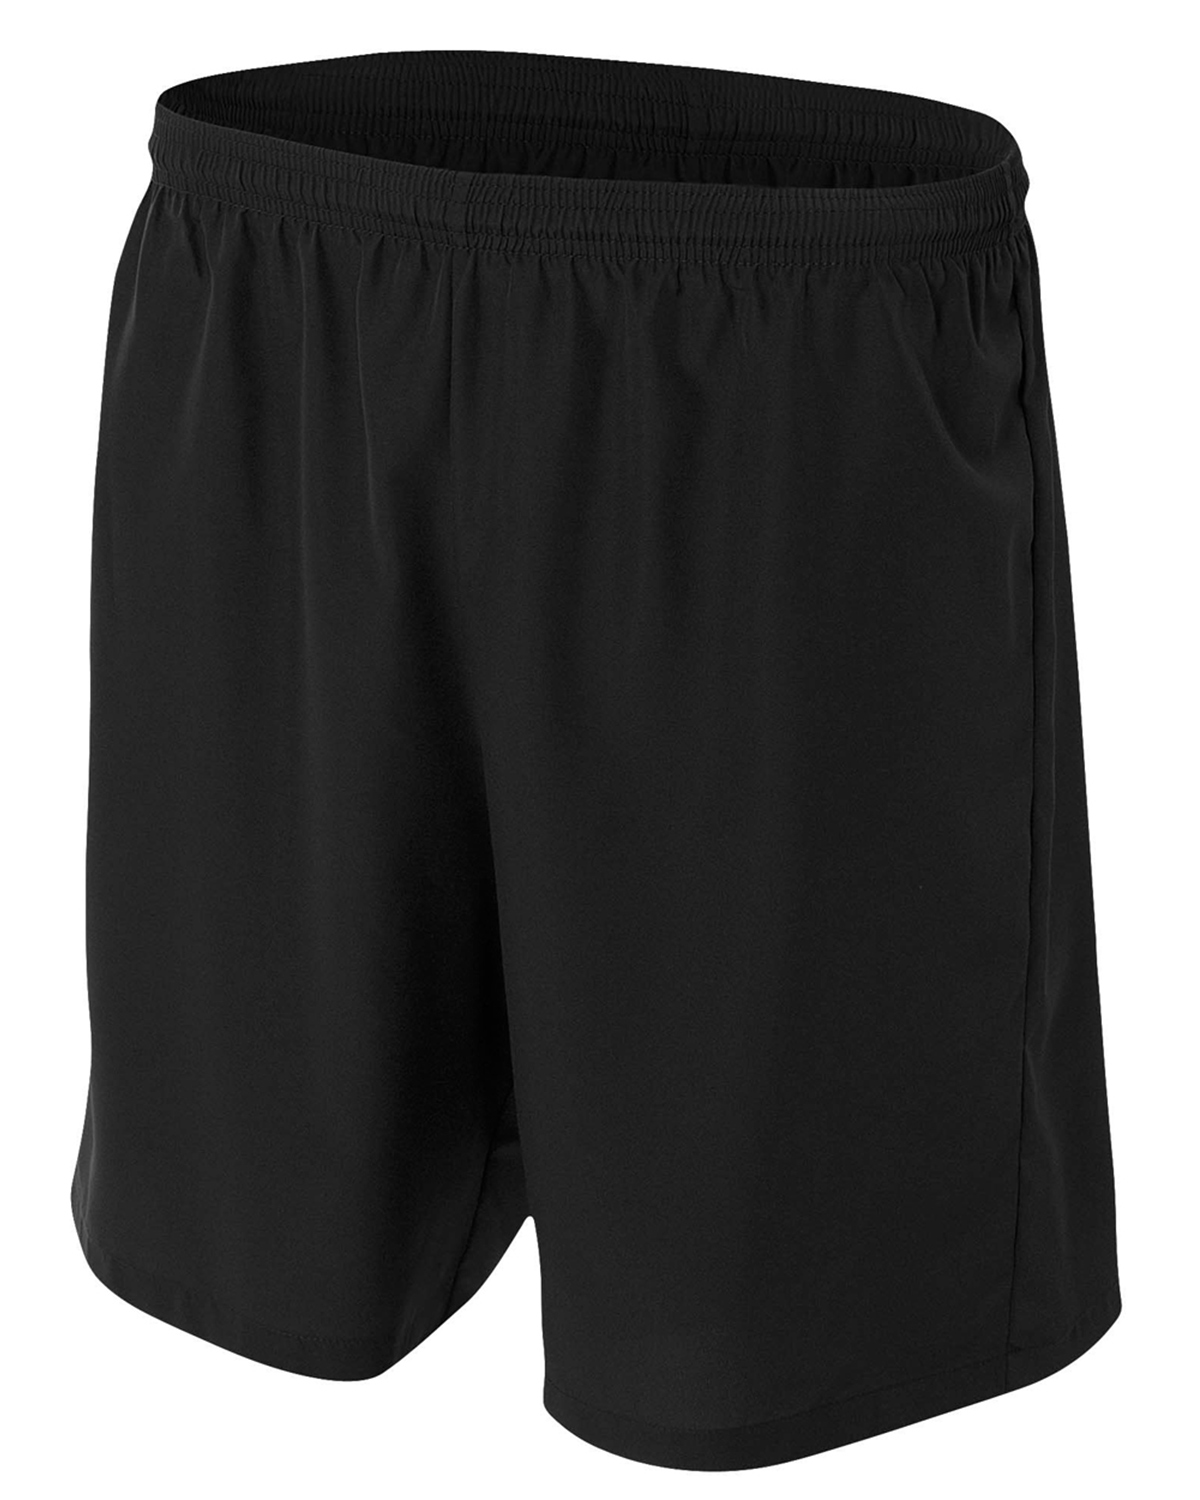 A4 Drop Ship NB5343 - Youth Woven Soccer Shorts